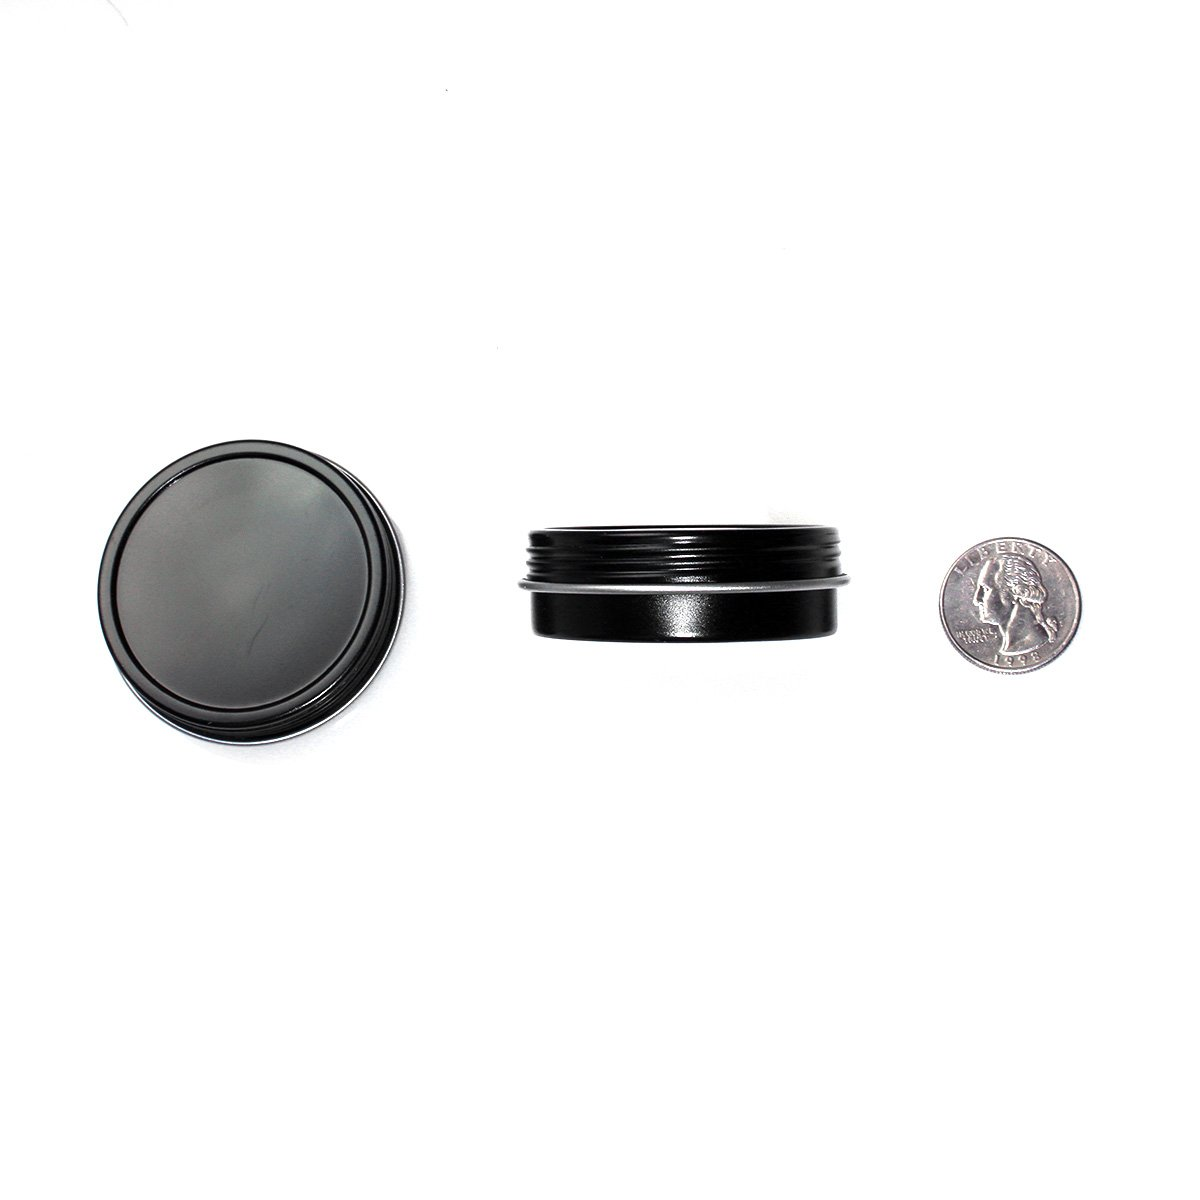 24 Pack Mimi Pack 1oz Screw Top Black Steel Tin Containers for Spices, Gifts, and Cosmetics by Mimi Pack